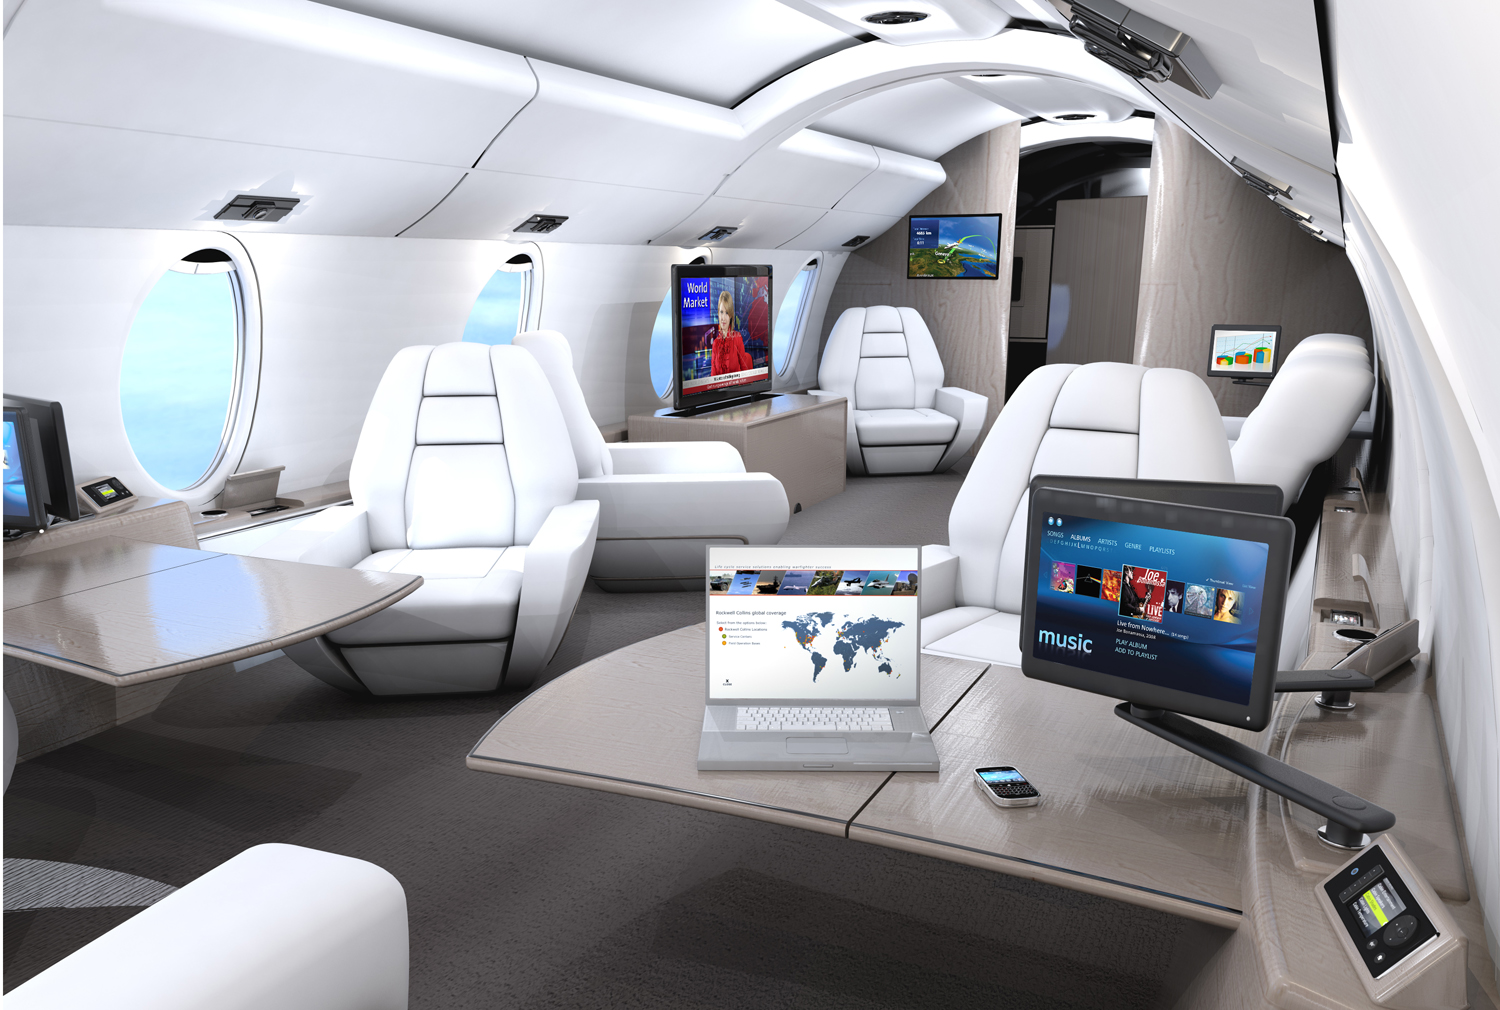 Rockwell Collins Venue™ HD cabin management and HD entertainment system is scalable to a broad range of business aircraft, from King Airs to large VIP jets. Image and Caption: Rockwell Collins